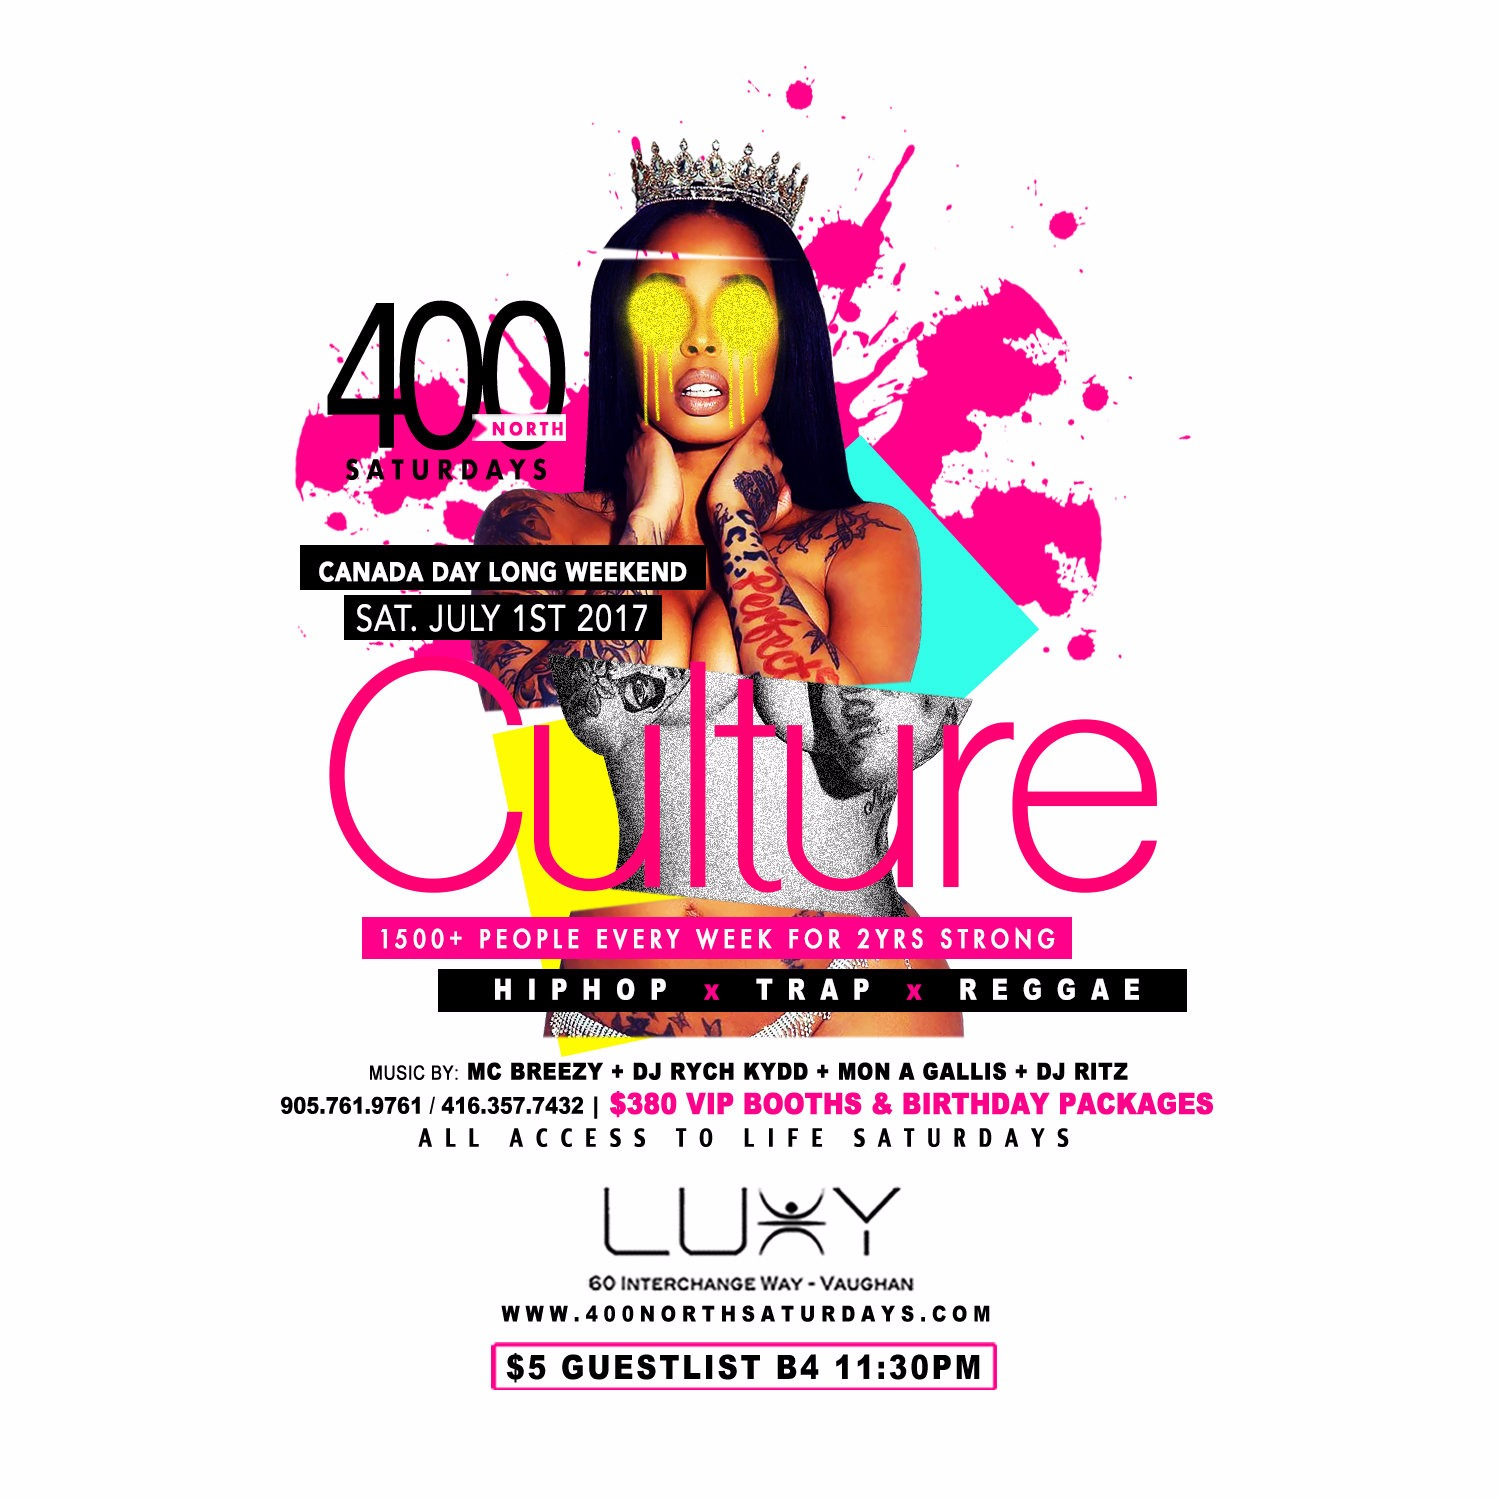 400 NORTH SATURDAYS - CULTURE